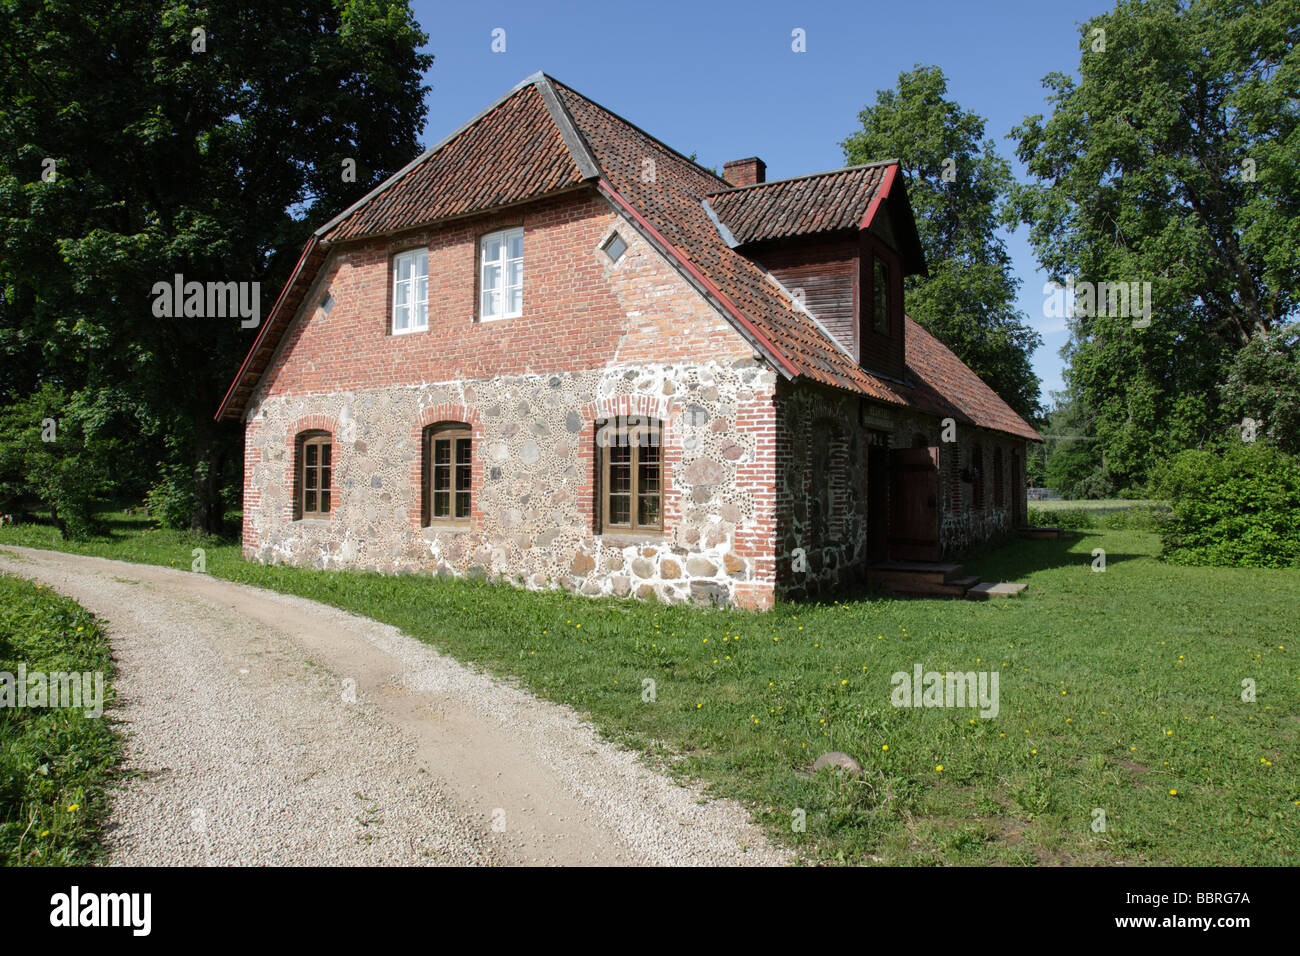 traditional house and  museum at Heimtali near Viljandi, Estonia, Baltic Nation, Eastern Europe. Photo by Willy - Stock Image